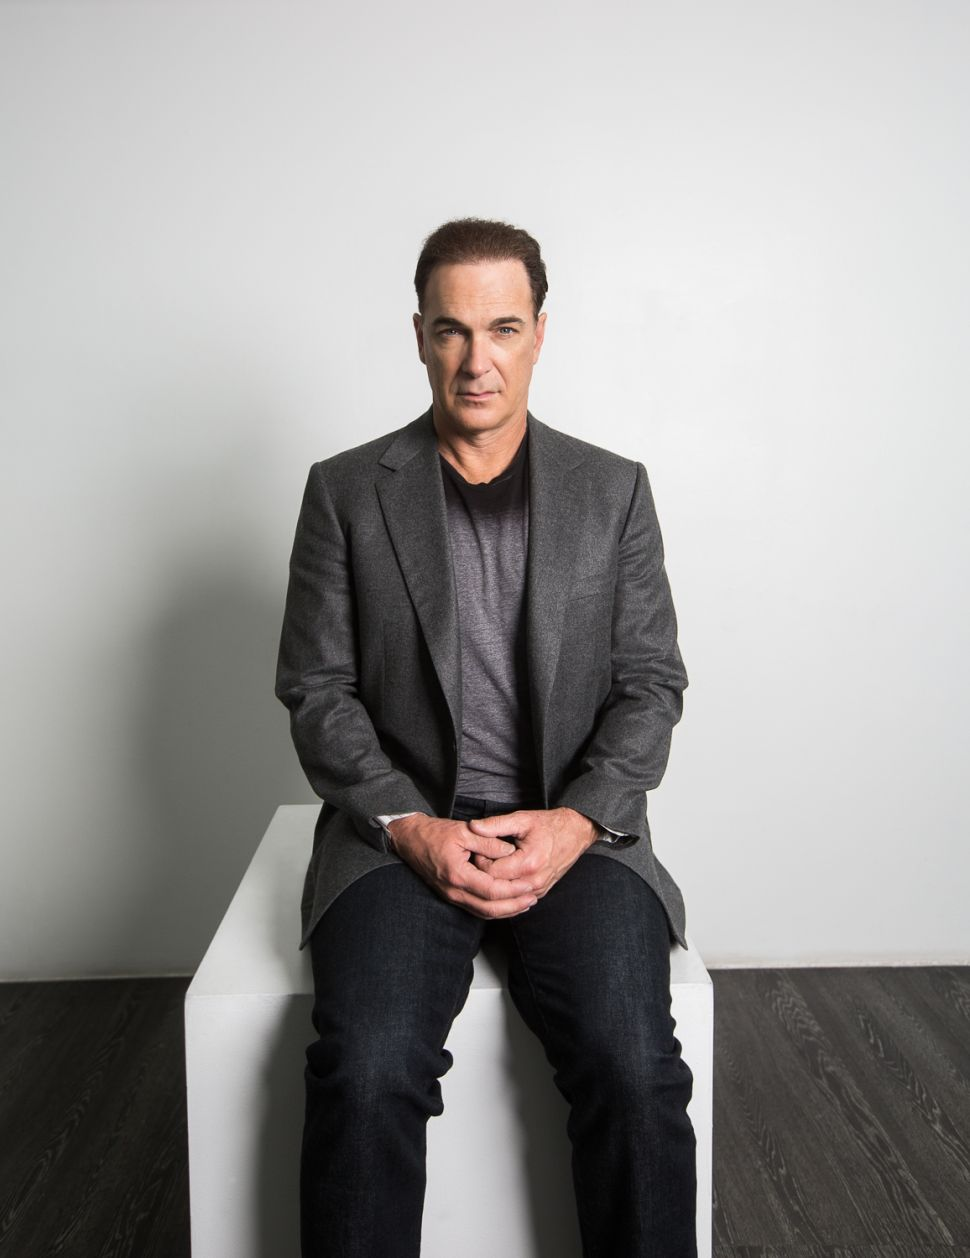 Patrick Warburton Brings Lemony Snicket Out From Behind the Page